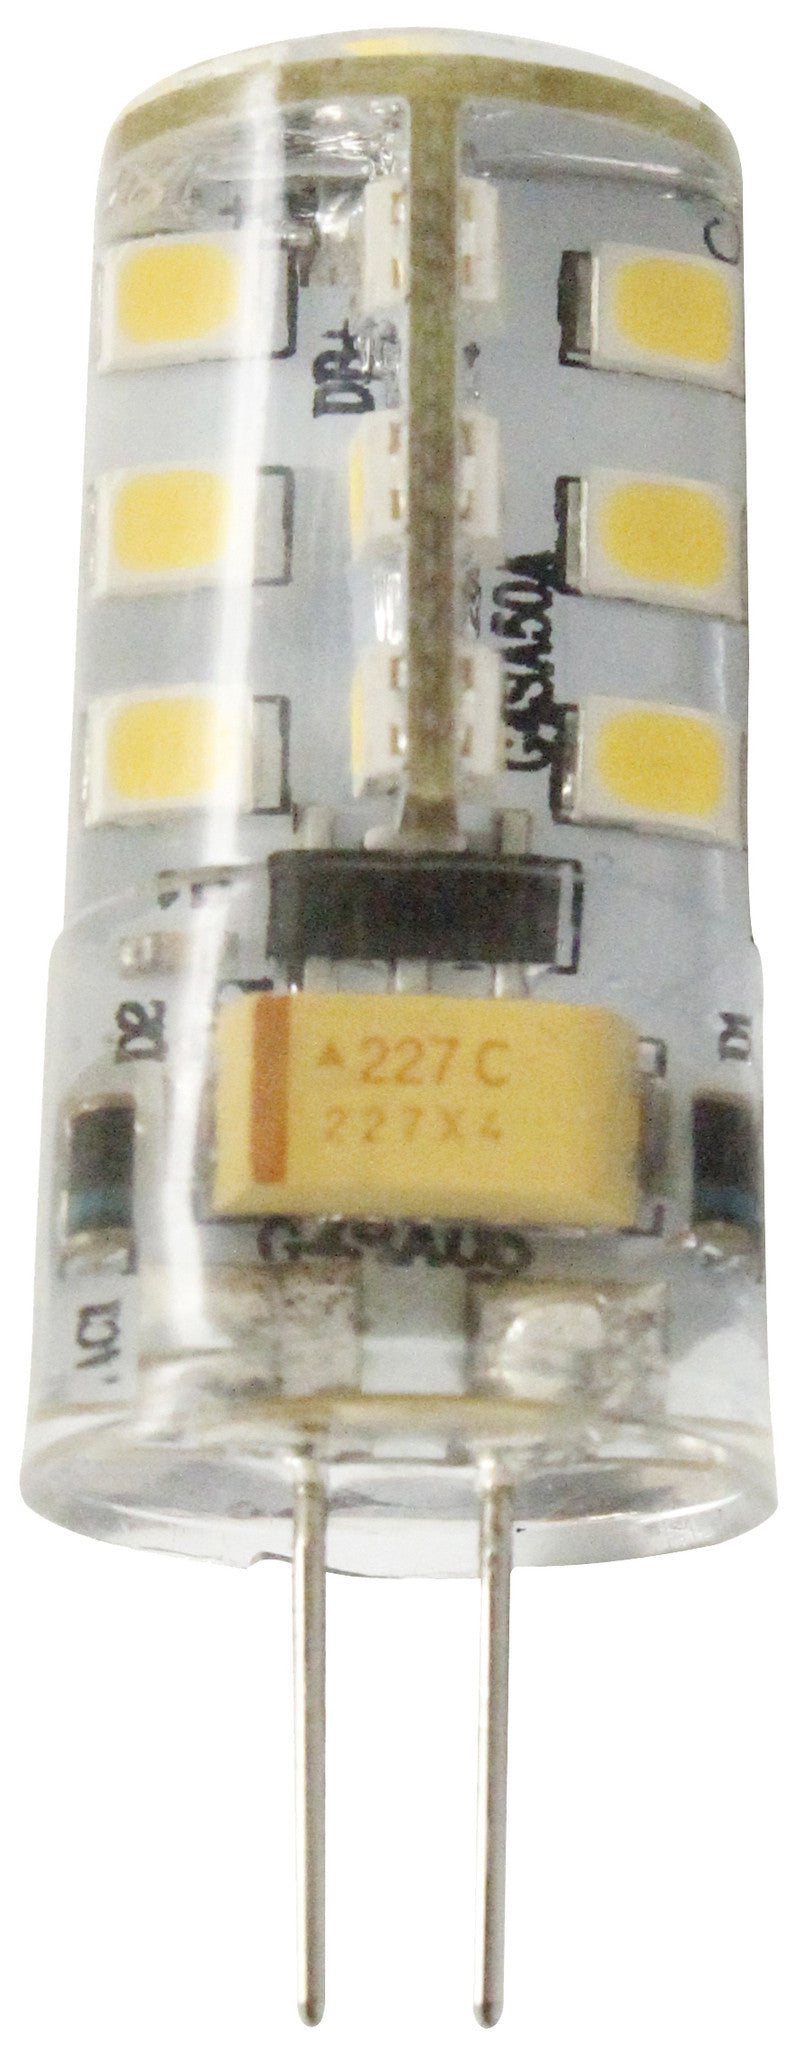 161163 - Specific LED G4 3W 3000K 220Lm